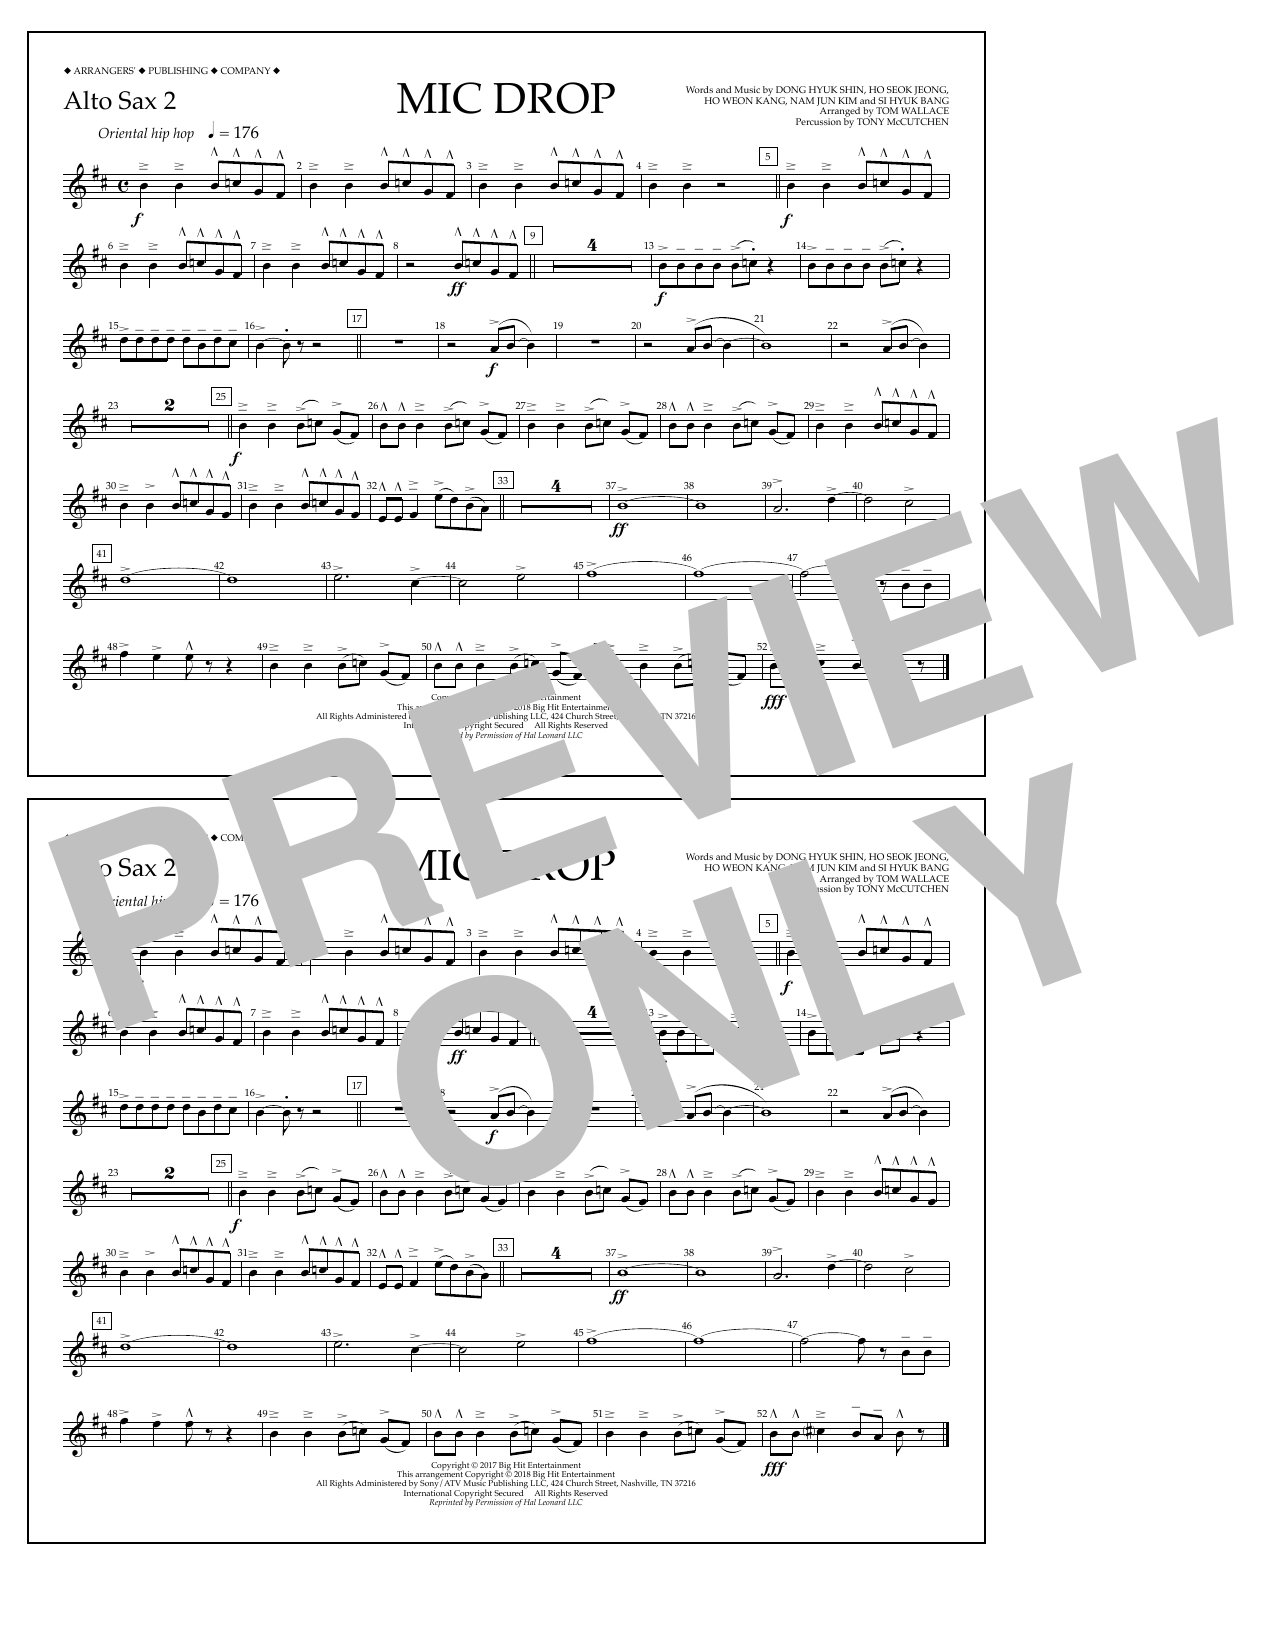 Download Tom Wallace 'Mic Drop - Alto Sax 2' Digital Sheet Music Notes & Chords and start playing in minutes